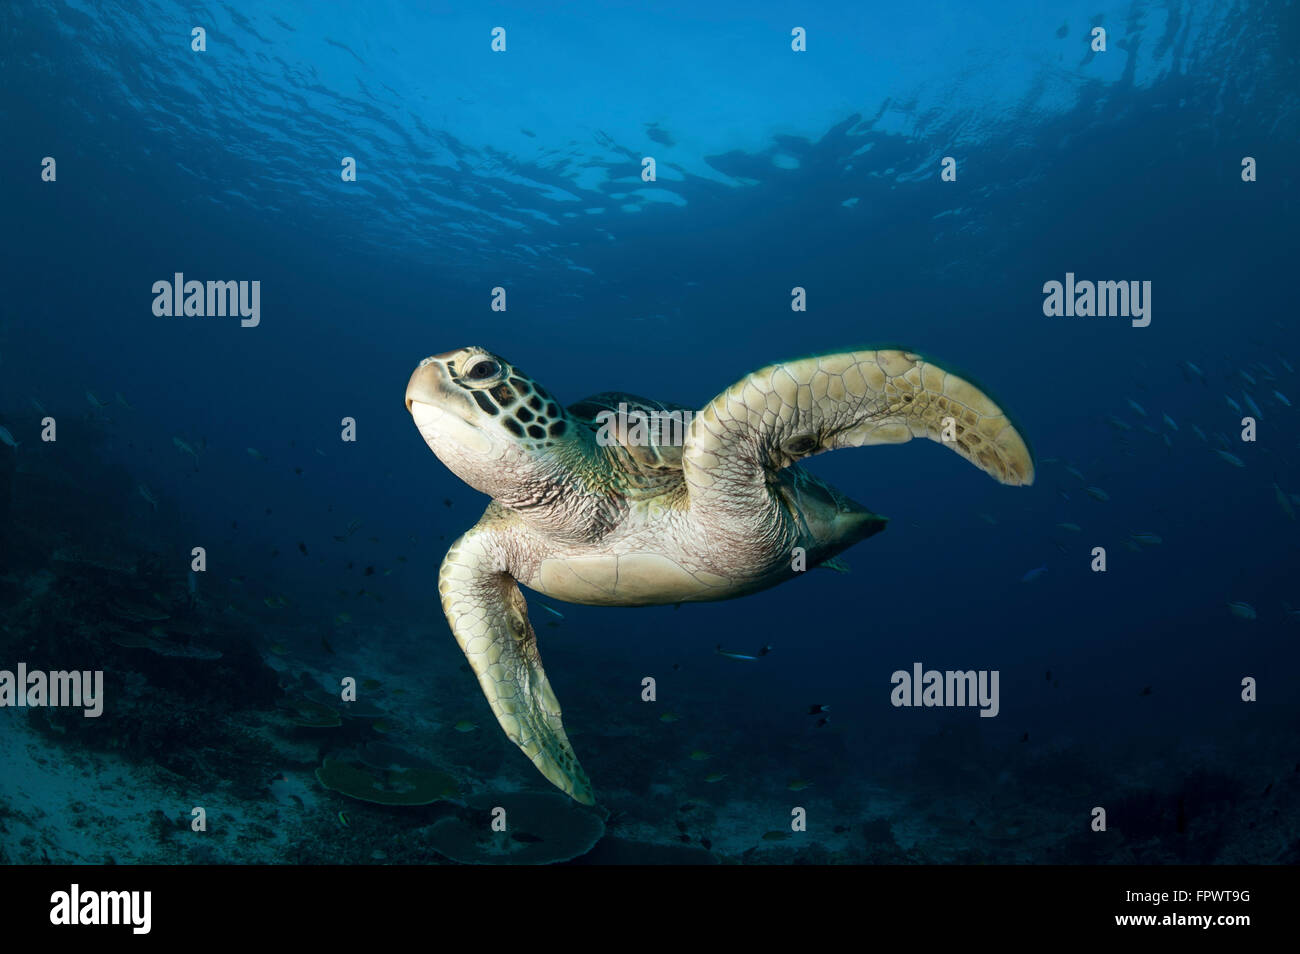 A green turtle (Chelonia mydas) swimming in Komodo National Park, Indonesia. - Stock Image